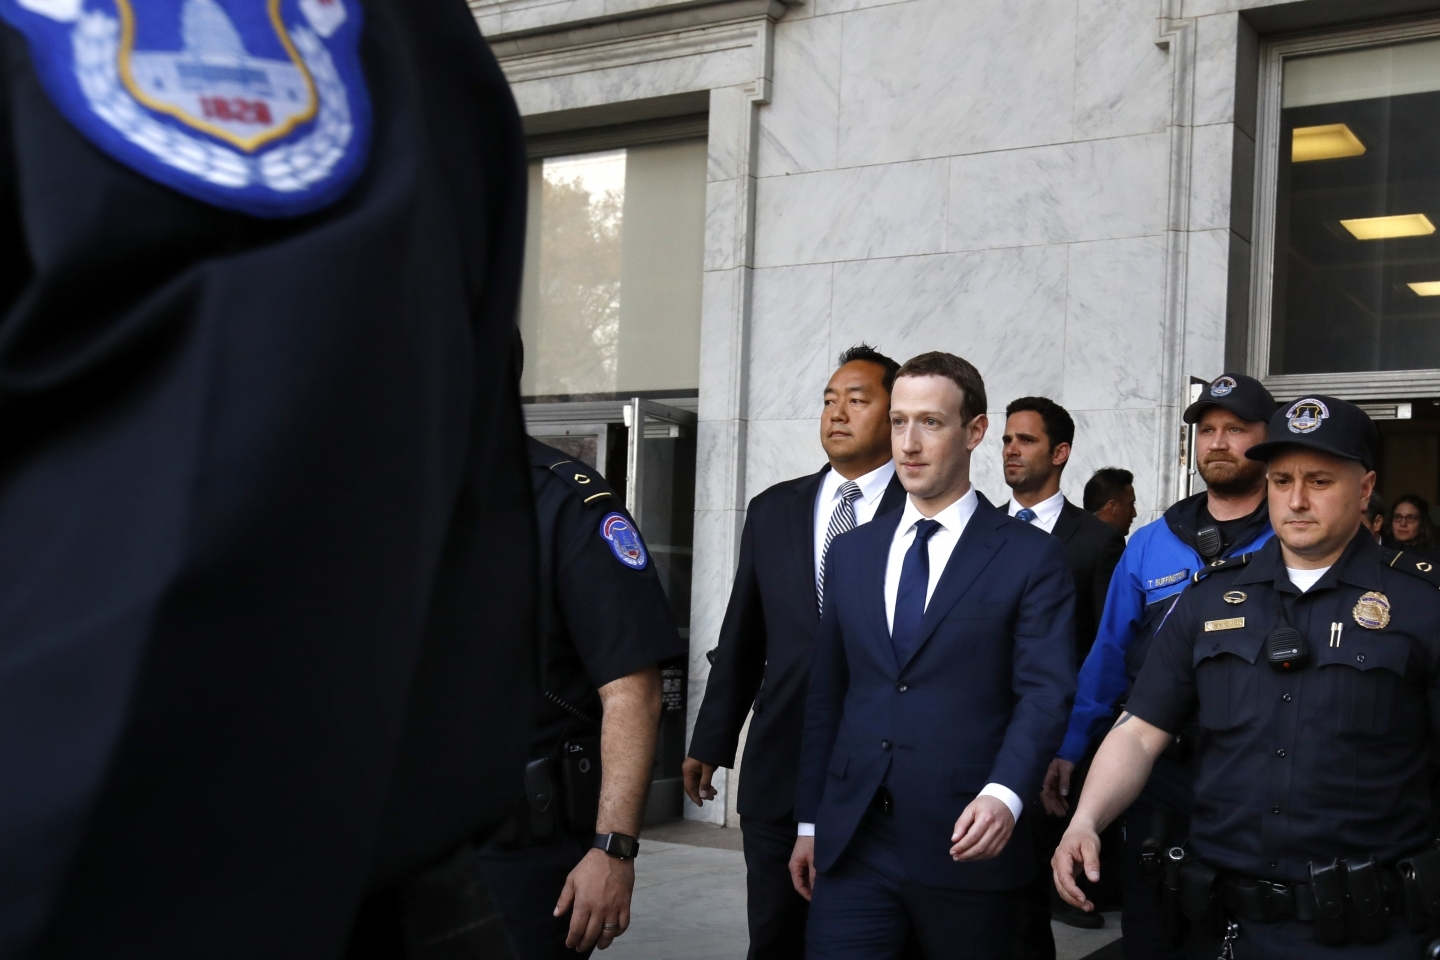 Facebook CEO Mark Zuckerberg leaves the Rayburn House Office Building after testifying on Capitol Hill in Washington on April 11, 2018. (AP Photo/Jacquelyn Martin)